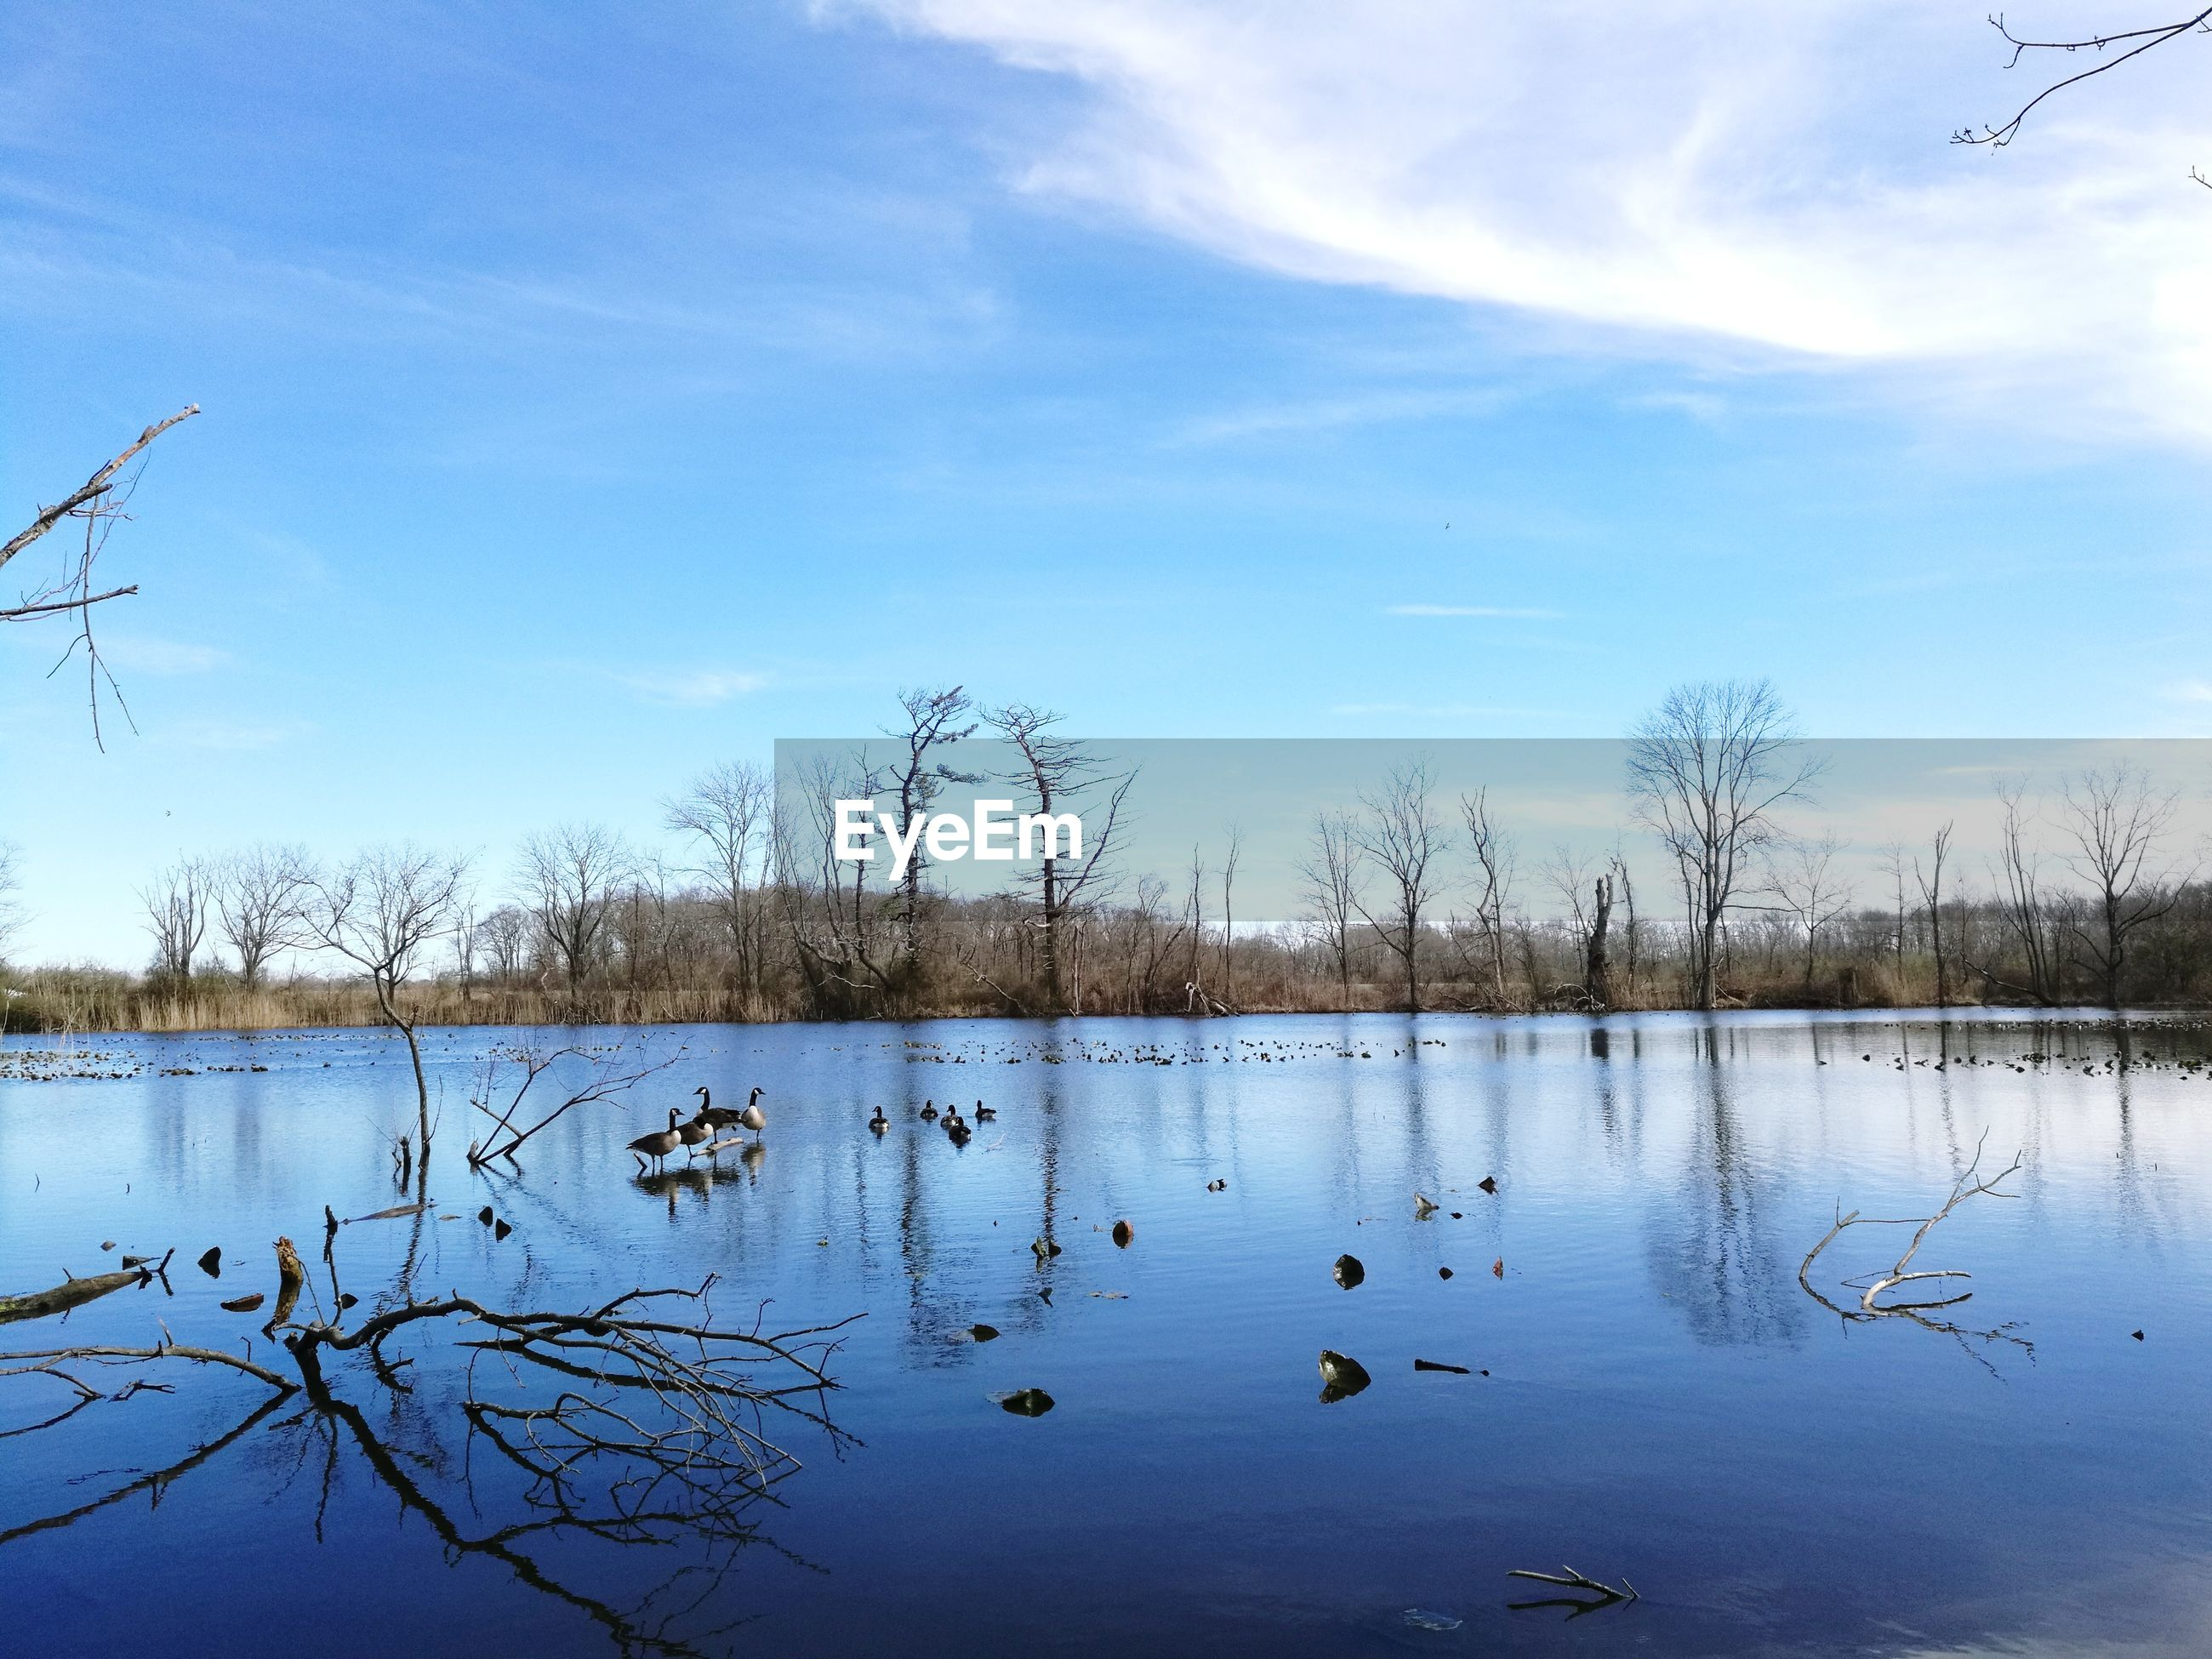 water, reflection, sky, nature, lake, tranquility, tree, no people, tranquil scene, reed - grass family, scenics, outdoors, day, beauty in nature, animals in the wild, cloud - sky, bird, animal themes